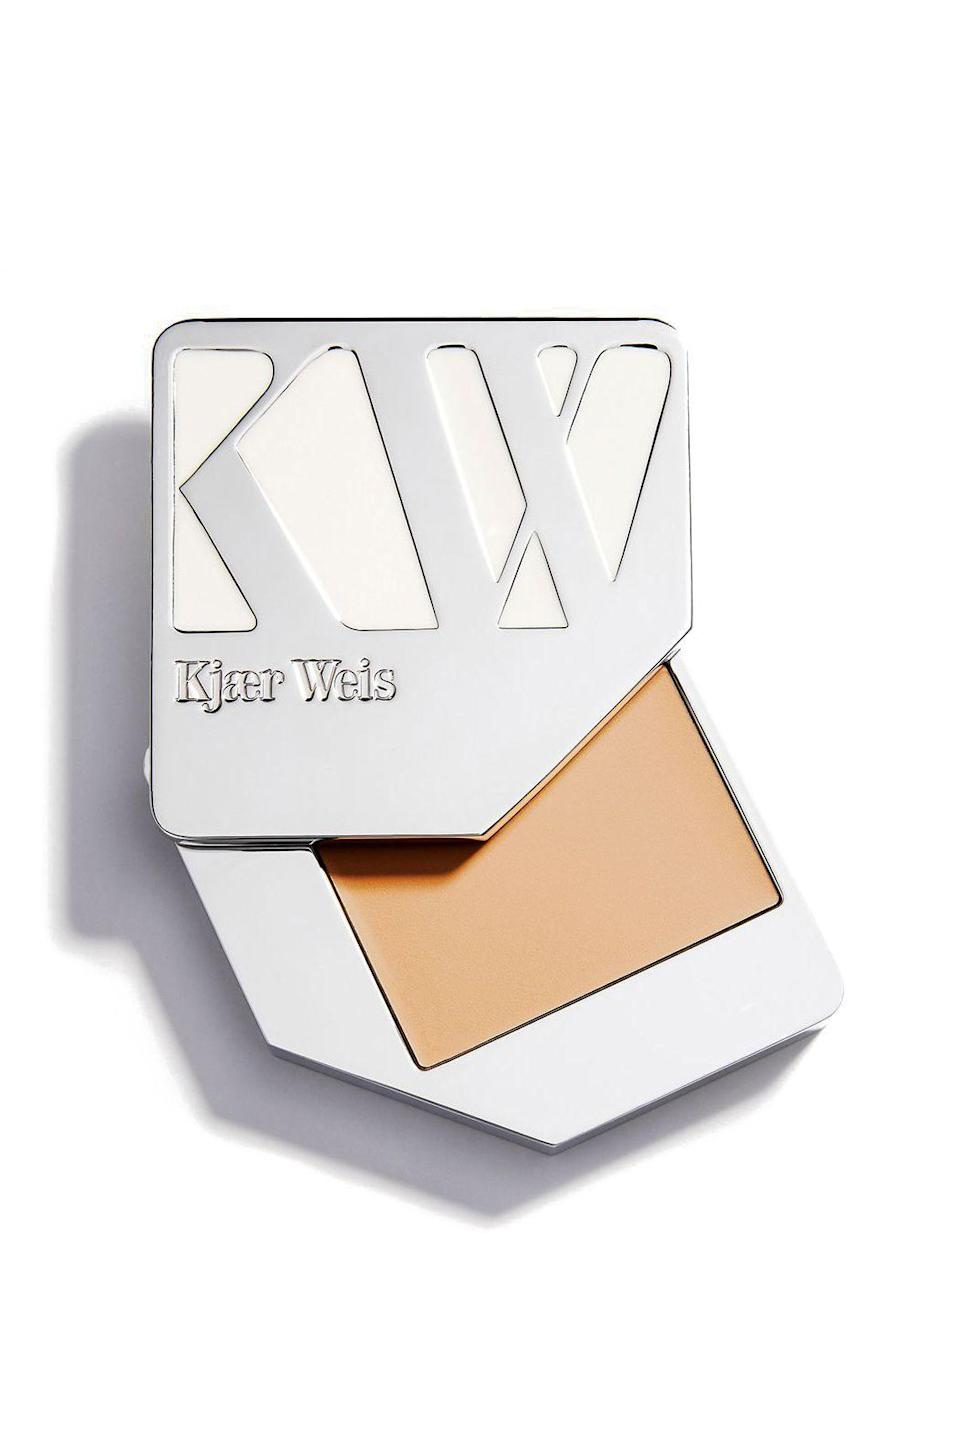 "<p><strong>Kjaer Weis</strong></p><p>net-a-porter.com</p><p><strong>$68.00</strong></p><p><a href=""https://go.redirectingat.com?id=74968X1596630&url=https%3A%2F%2Fwww.net-a-porter.com%2Fen-us%2Fshop%2Fproduct%2Fkjaer-weis%2Fcream-foundation-silken%2F639788&sref=https%3A%2F%2Fwww.marieclaire.com%2Fbeauty%2Fg33404973%2Fplastic-free-beauty-products%2F"" rel=""nofollow noopener"" target=""_blank"" data-ylk=""slk:SHOP IT"" class=""link rapid-noclick-resp"">SHOP IT</a></p><p>Kjaer's Weis' refillable foundation is a little pricey, but the quality is unparalleled compared to most package-conscious brands. It blends super easily into my face oil, guaranteeing that a little goes a long way. I add just one more layer on trouble spots and under the eyes so not to need concealer.</p>"